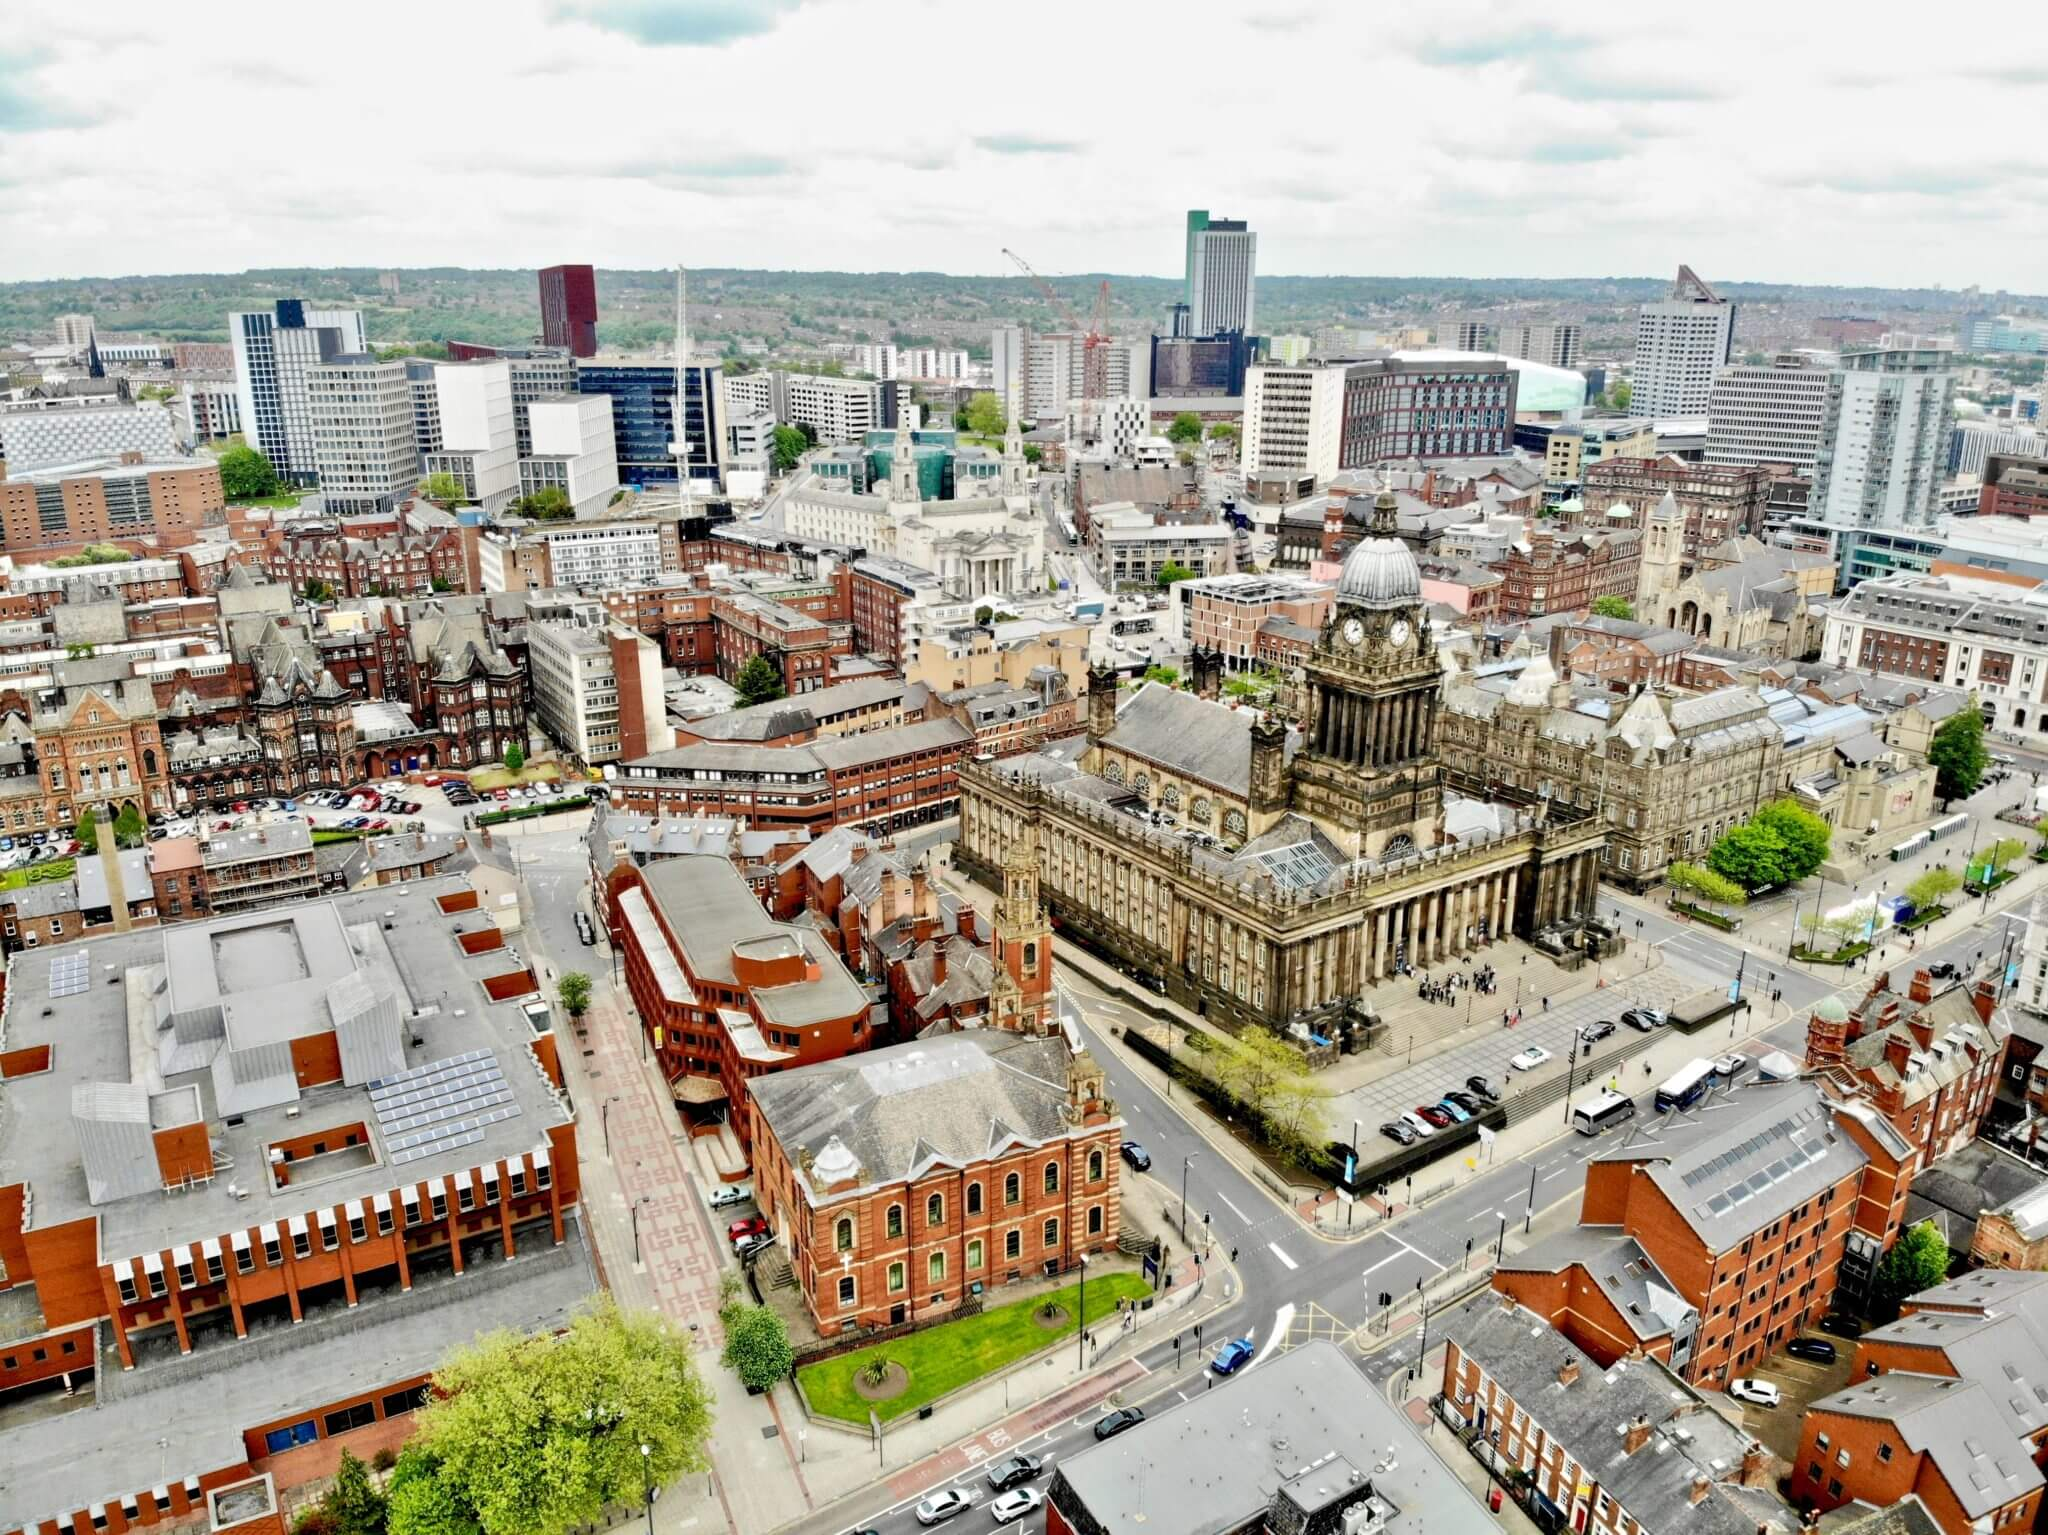 Leeds areal view